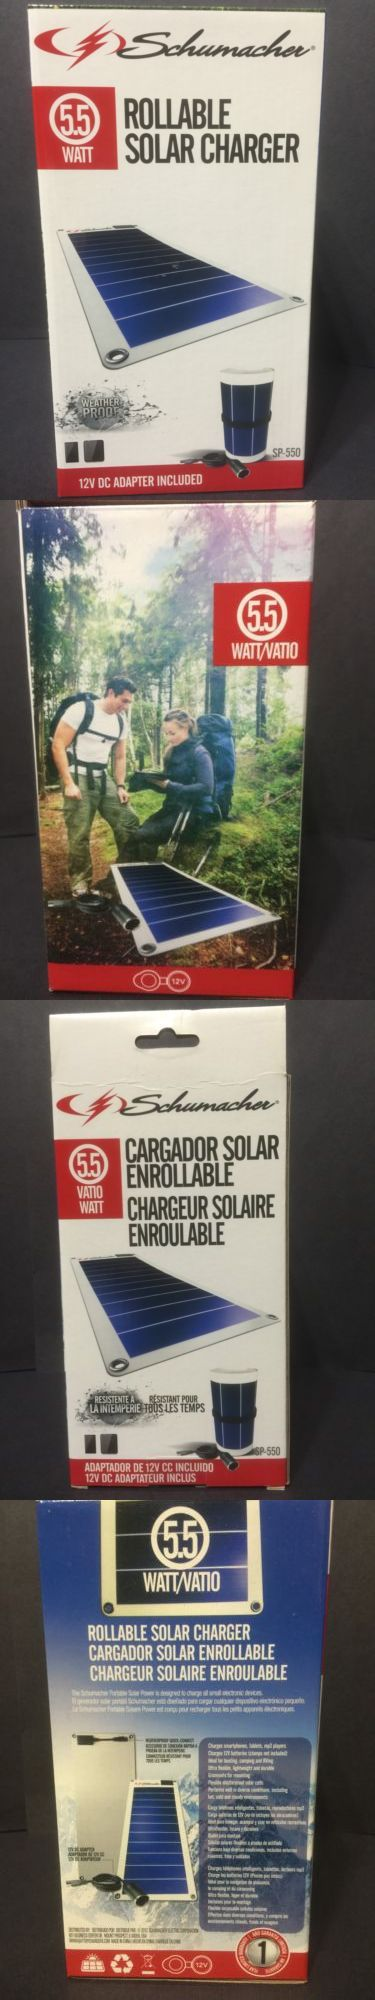 Generators and Heaters 16039: Schumacher Rollable Solar Charger 5.5 Watt With 12V And Usb BUY IT NOW ONLY: $79.99